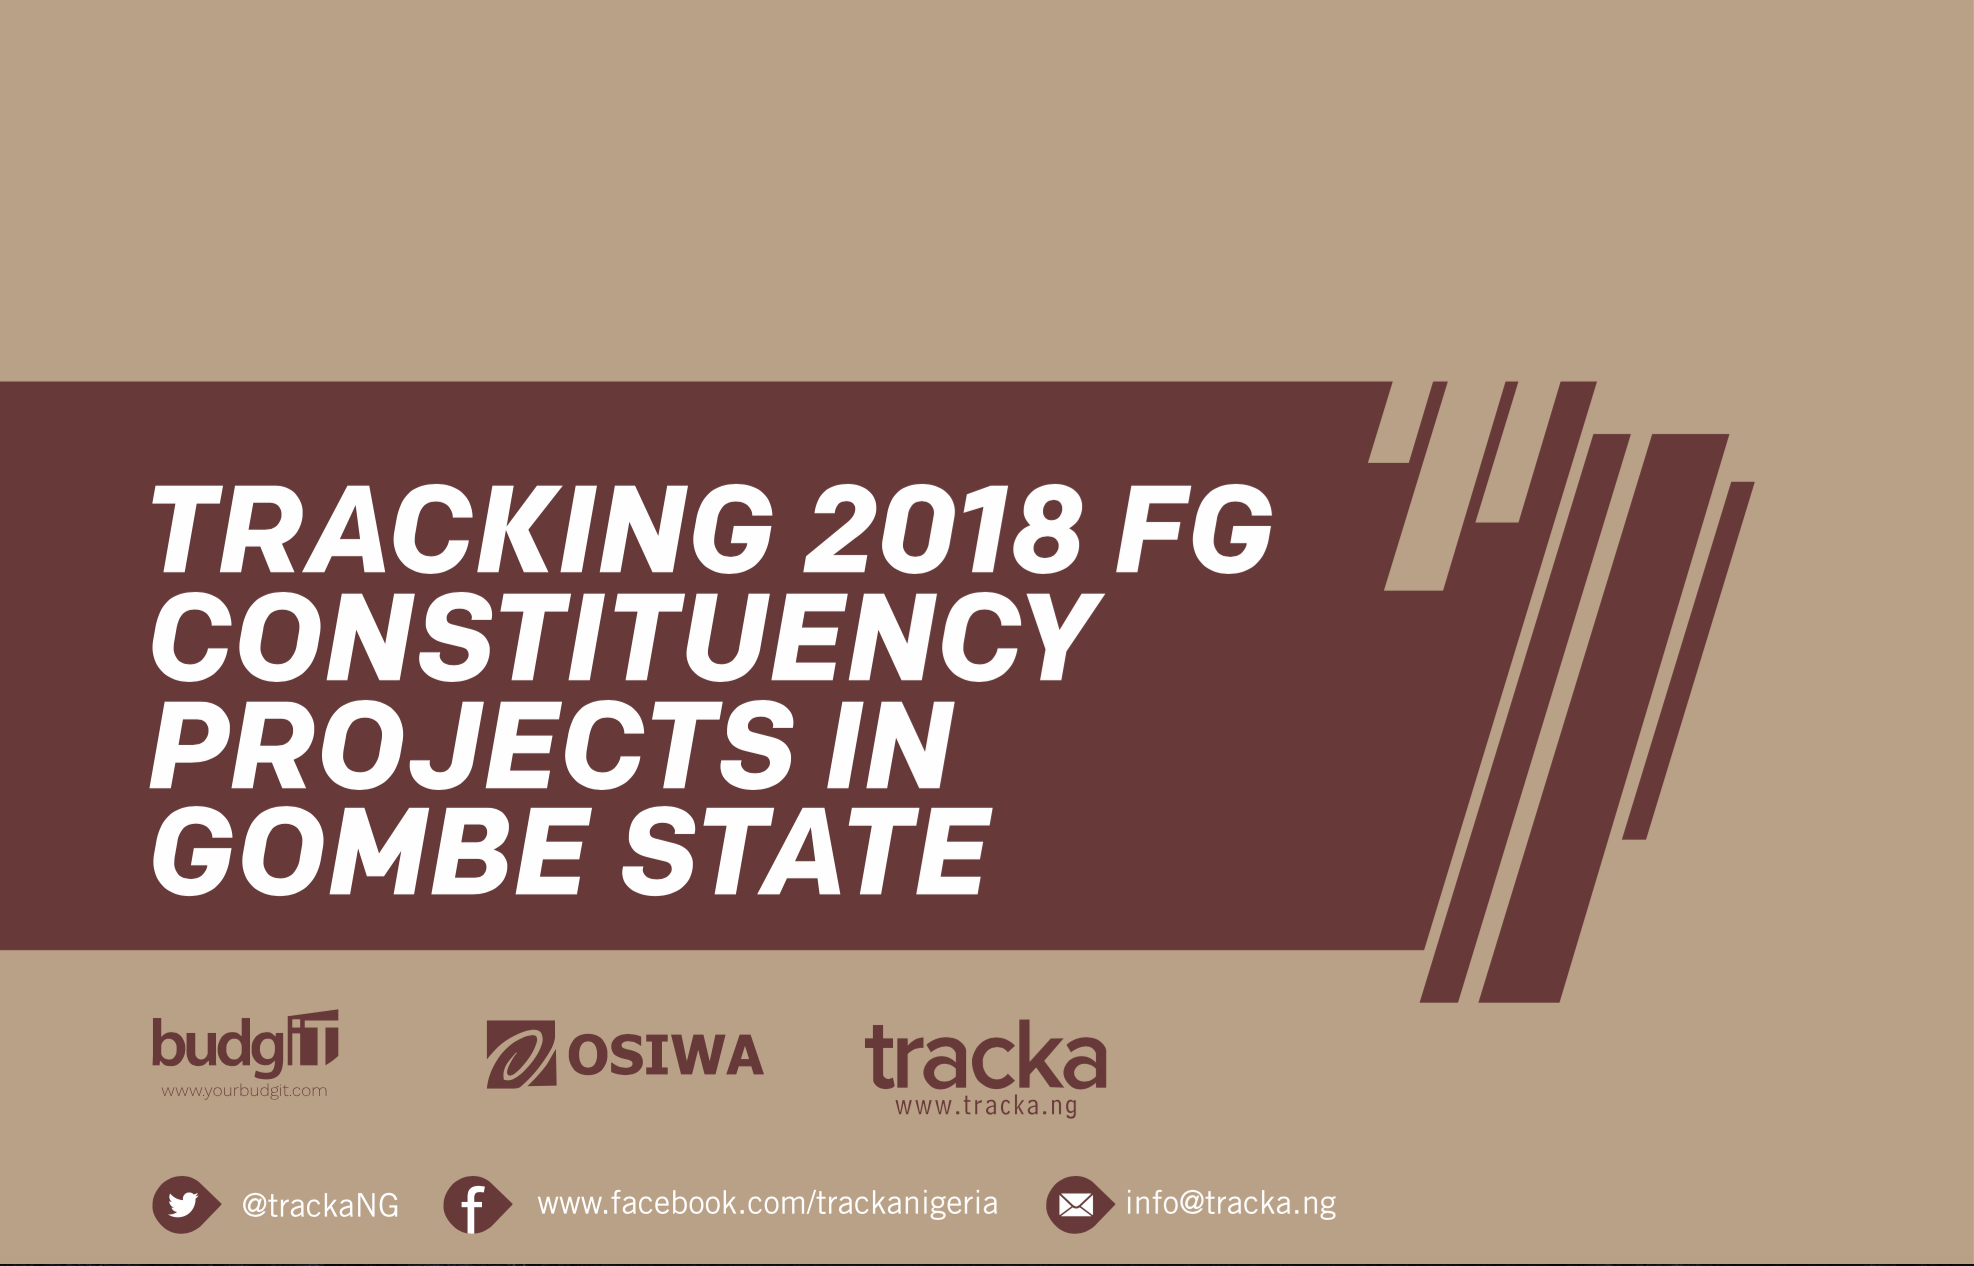 2018 FG Constituency Projects in Gombe State